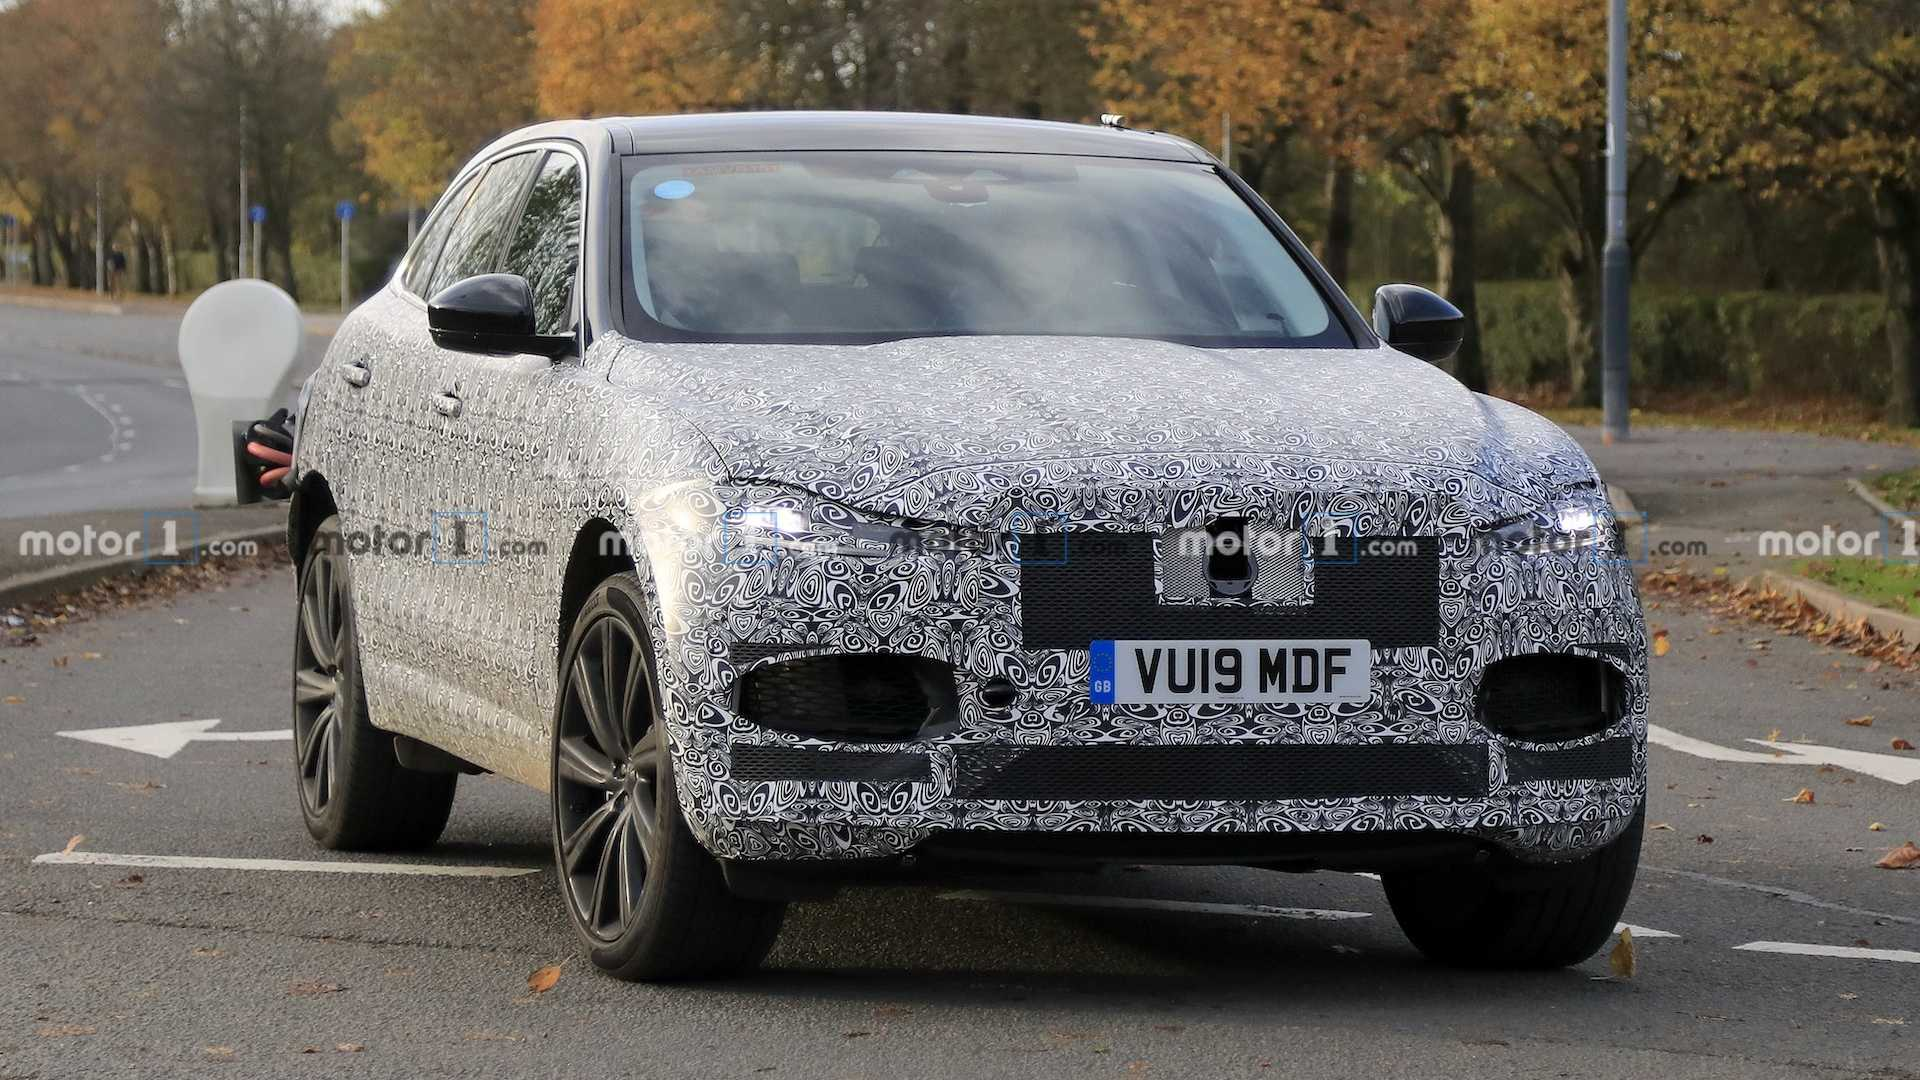 The new Jaguar F-Pace should come into the spotlight sometime in 2020 and ship later that year. In the meantime, though, its prototype versions keep getting spotted on the streets.